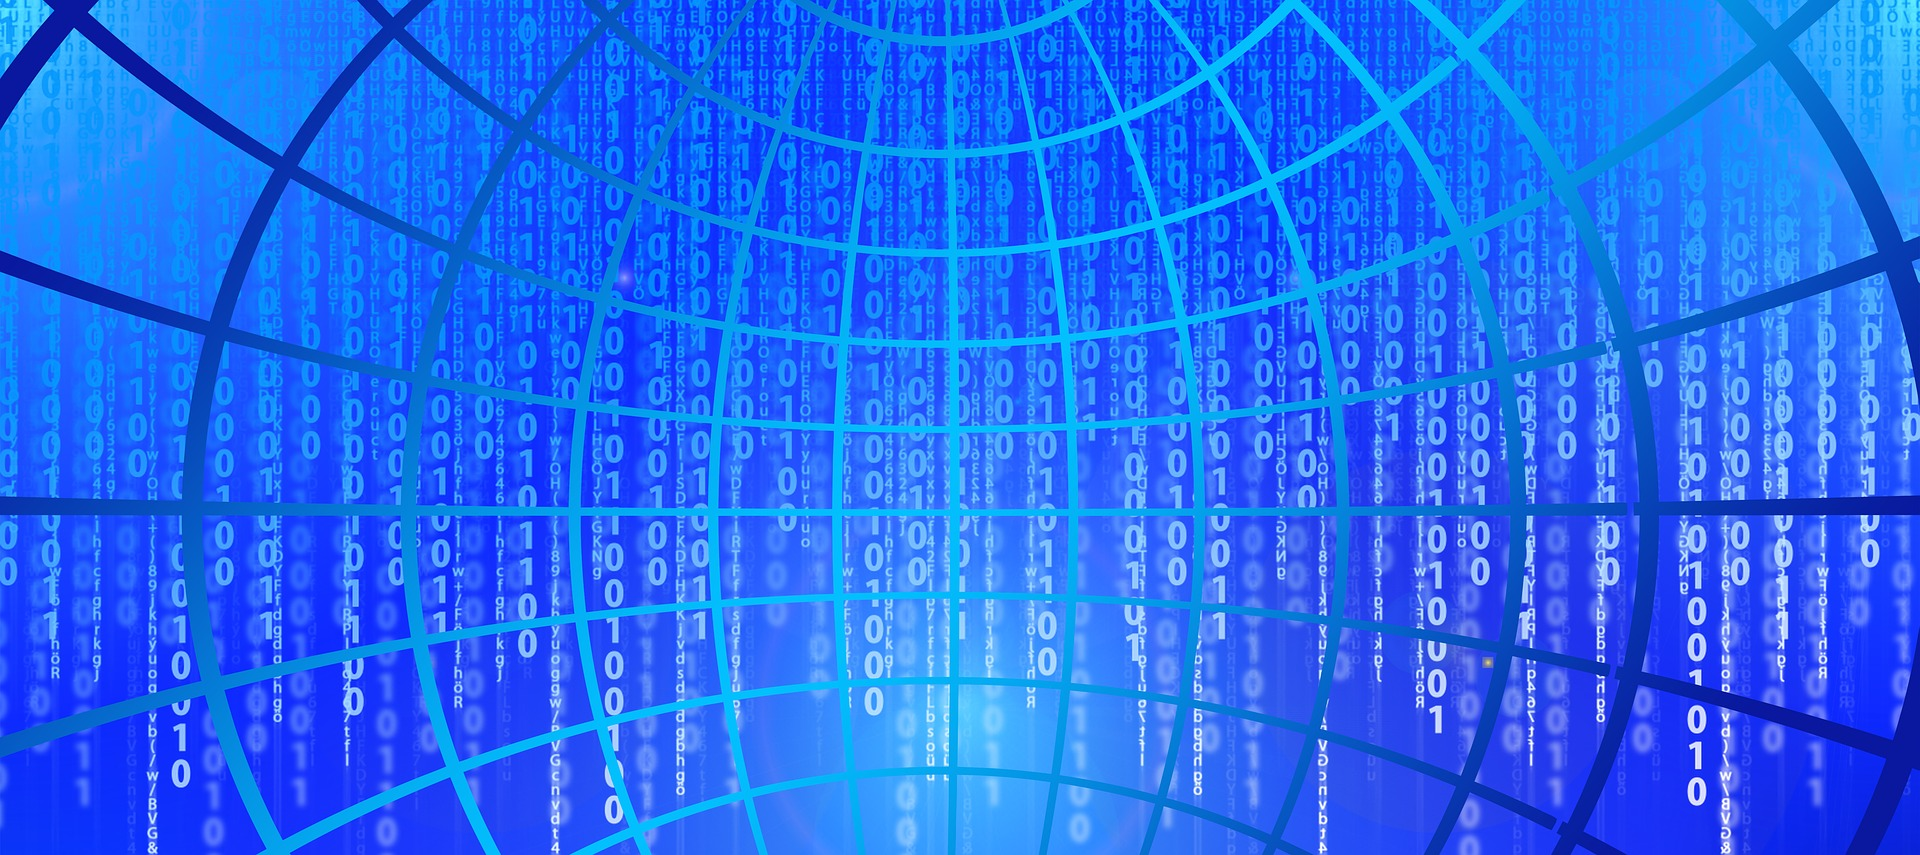 blue-background-matrix